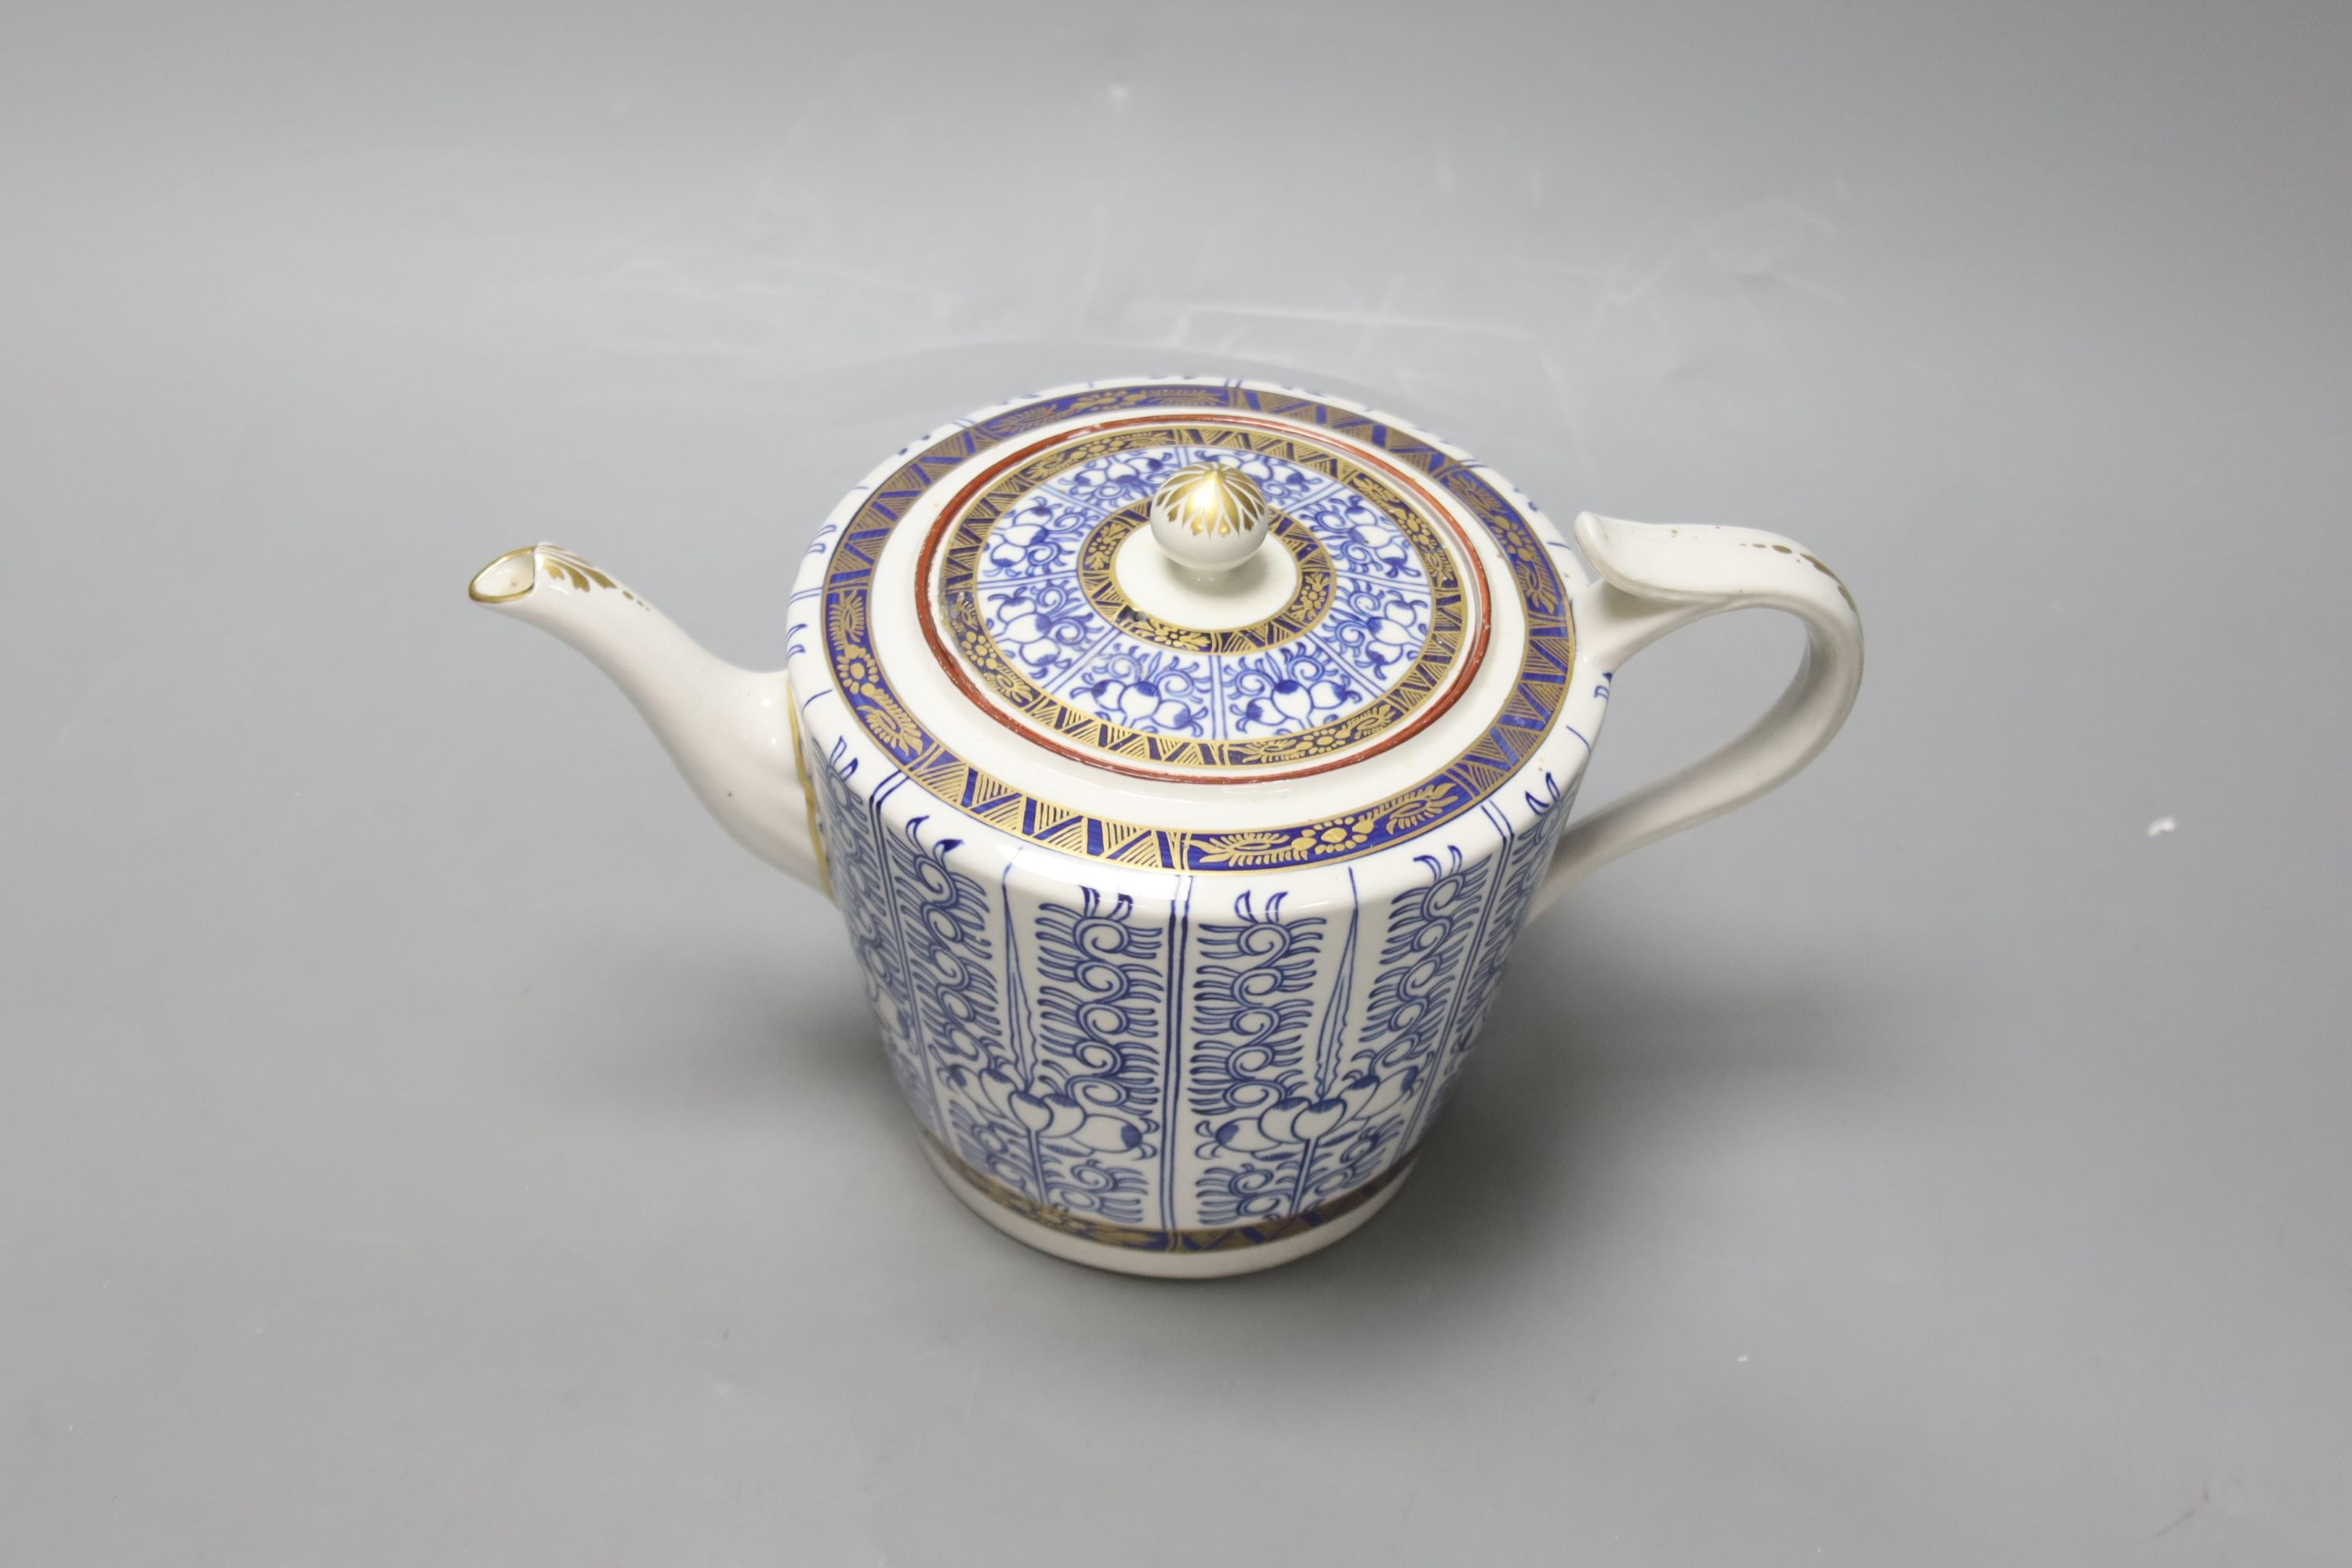 A Royal Worcester late Dr Wall / early Flight teapot and cover, Lily pattern, height 14cm - Image 2 of 4